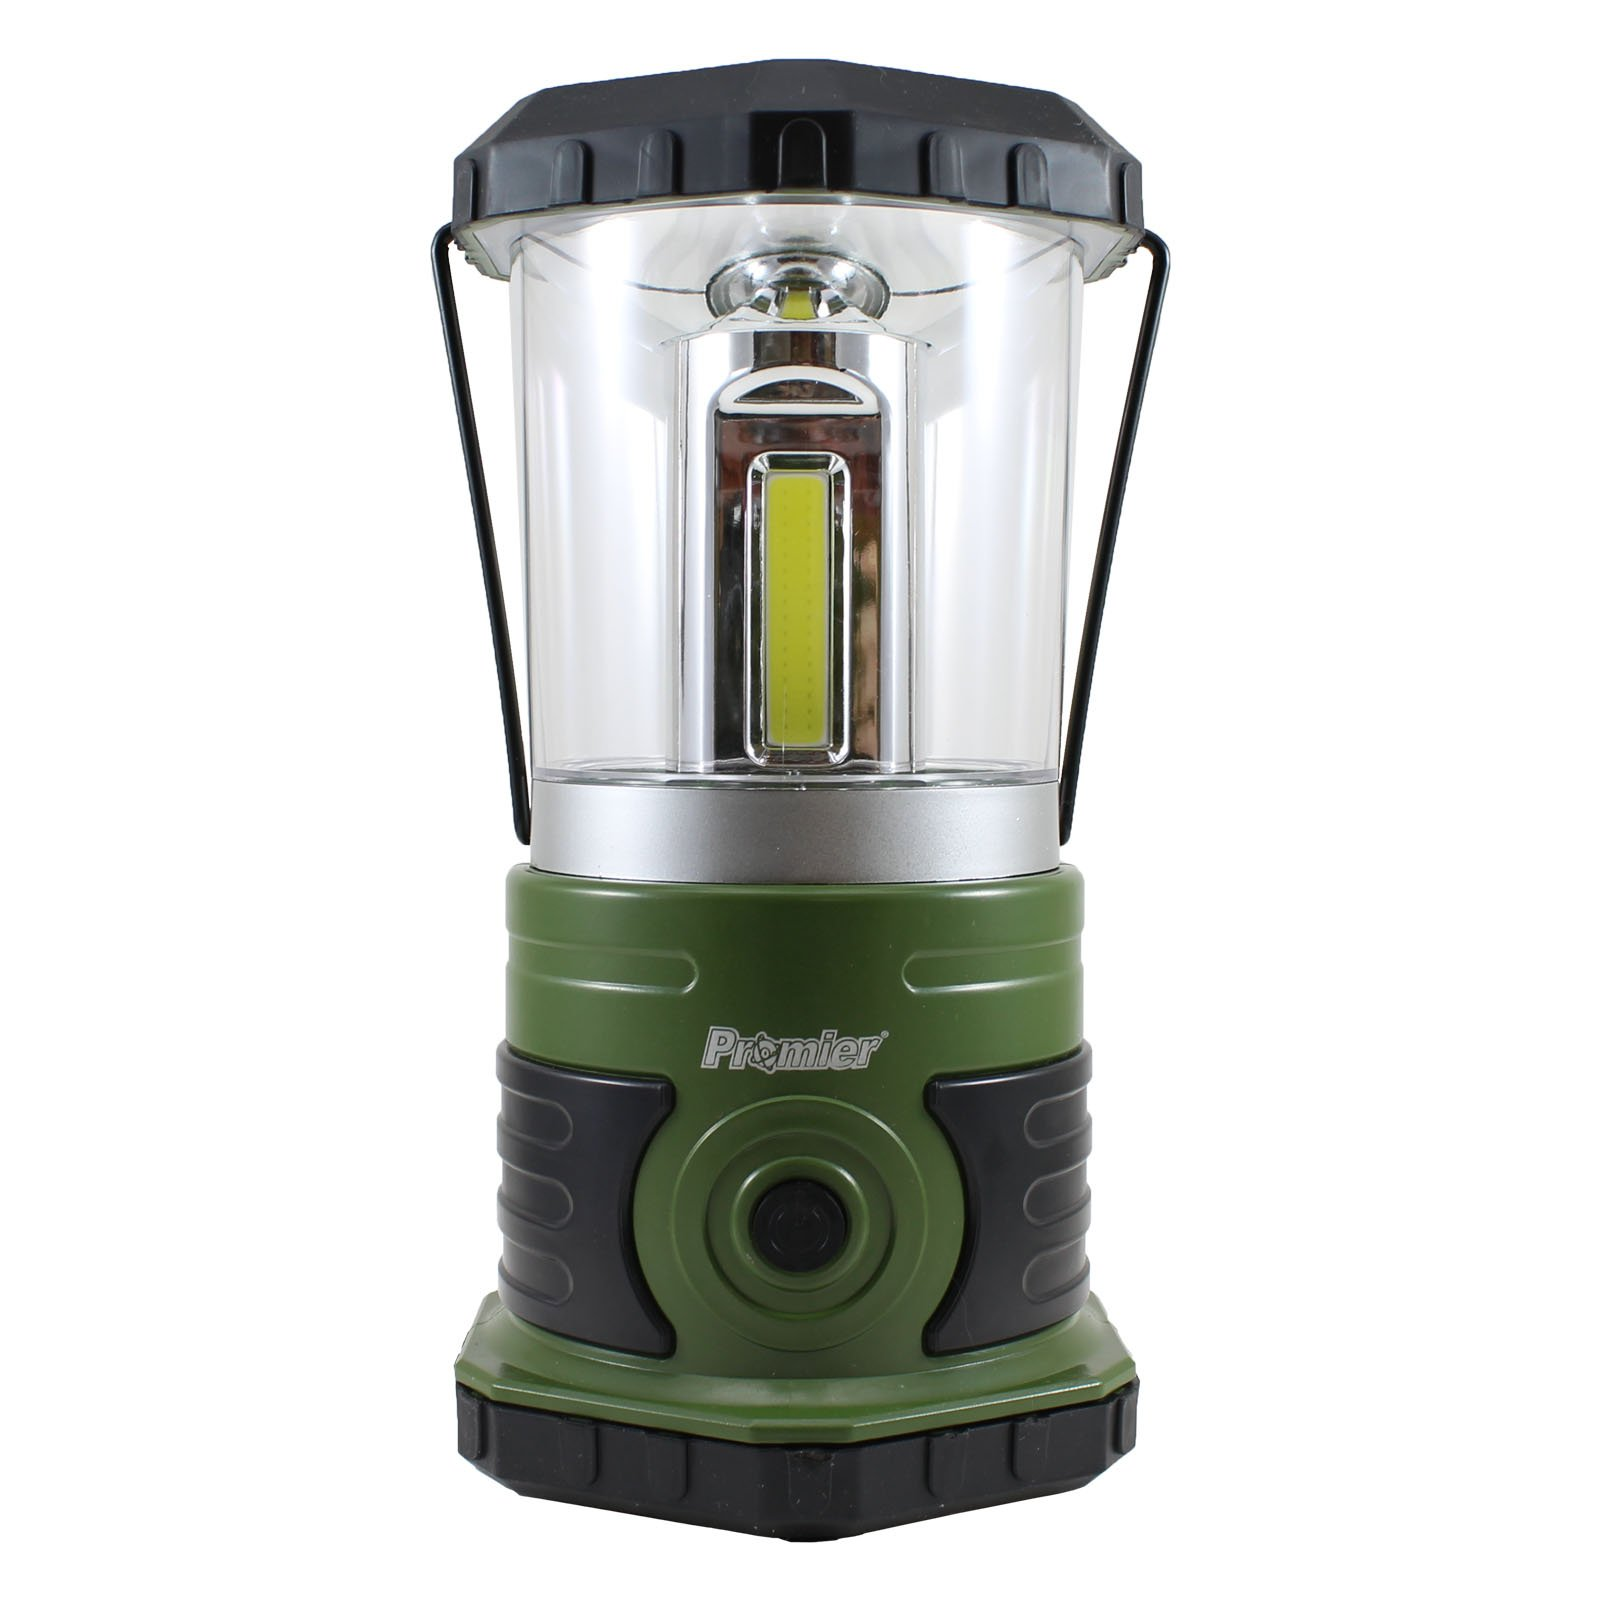 1000 LUMEN LED Lantern/Camping, Workshops, Home, Cabin, or Anywhere that light is needed (Good for Extreme Cold or Heat) (100% Manufacture Replacement Guarantee) Authorized Promier Dealer